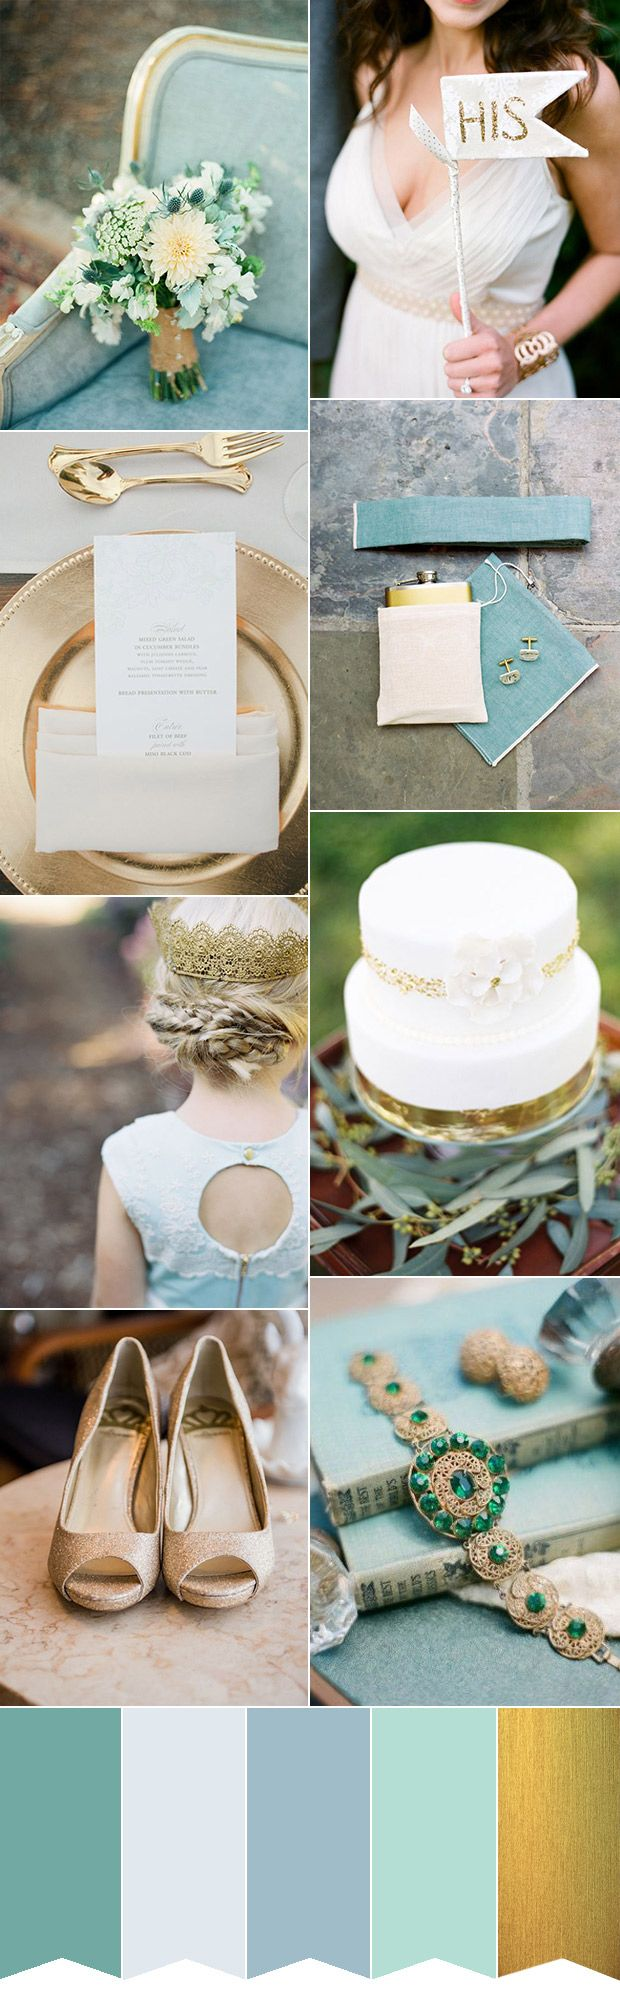 A Gorgeous Something Blue Wedding Colour Palette of Duck Egg Blue and Glistening Gold | www.onefabday.com